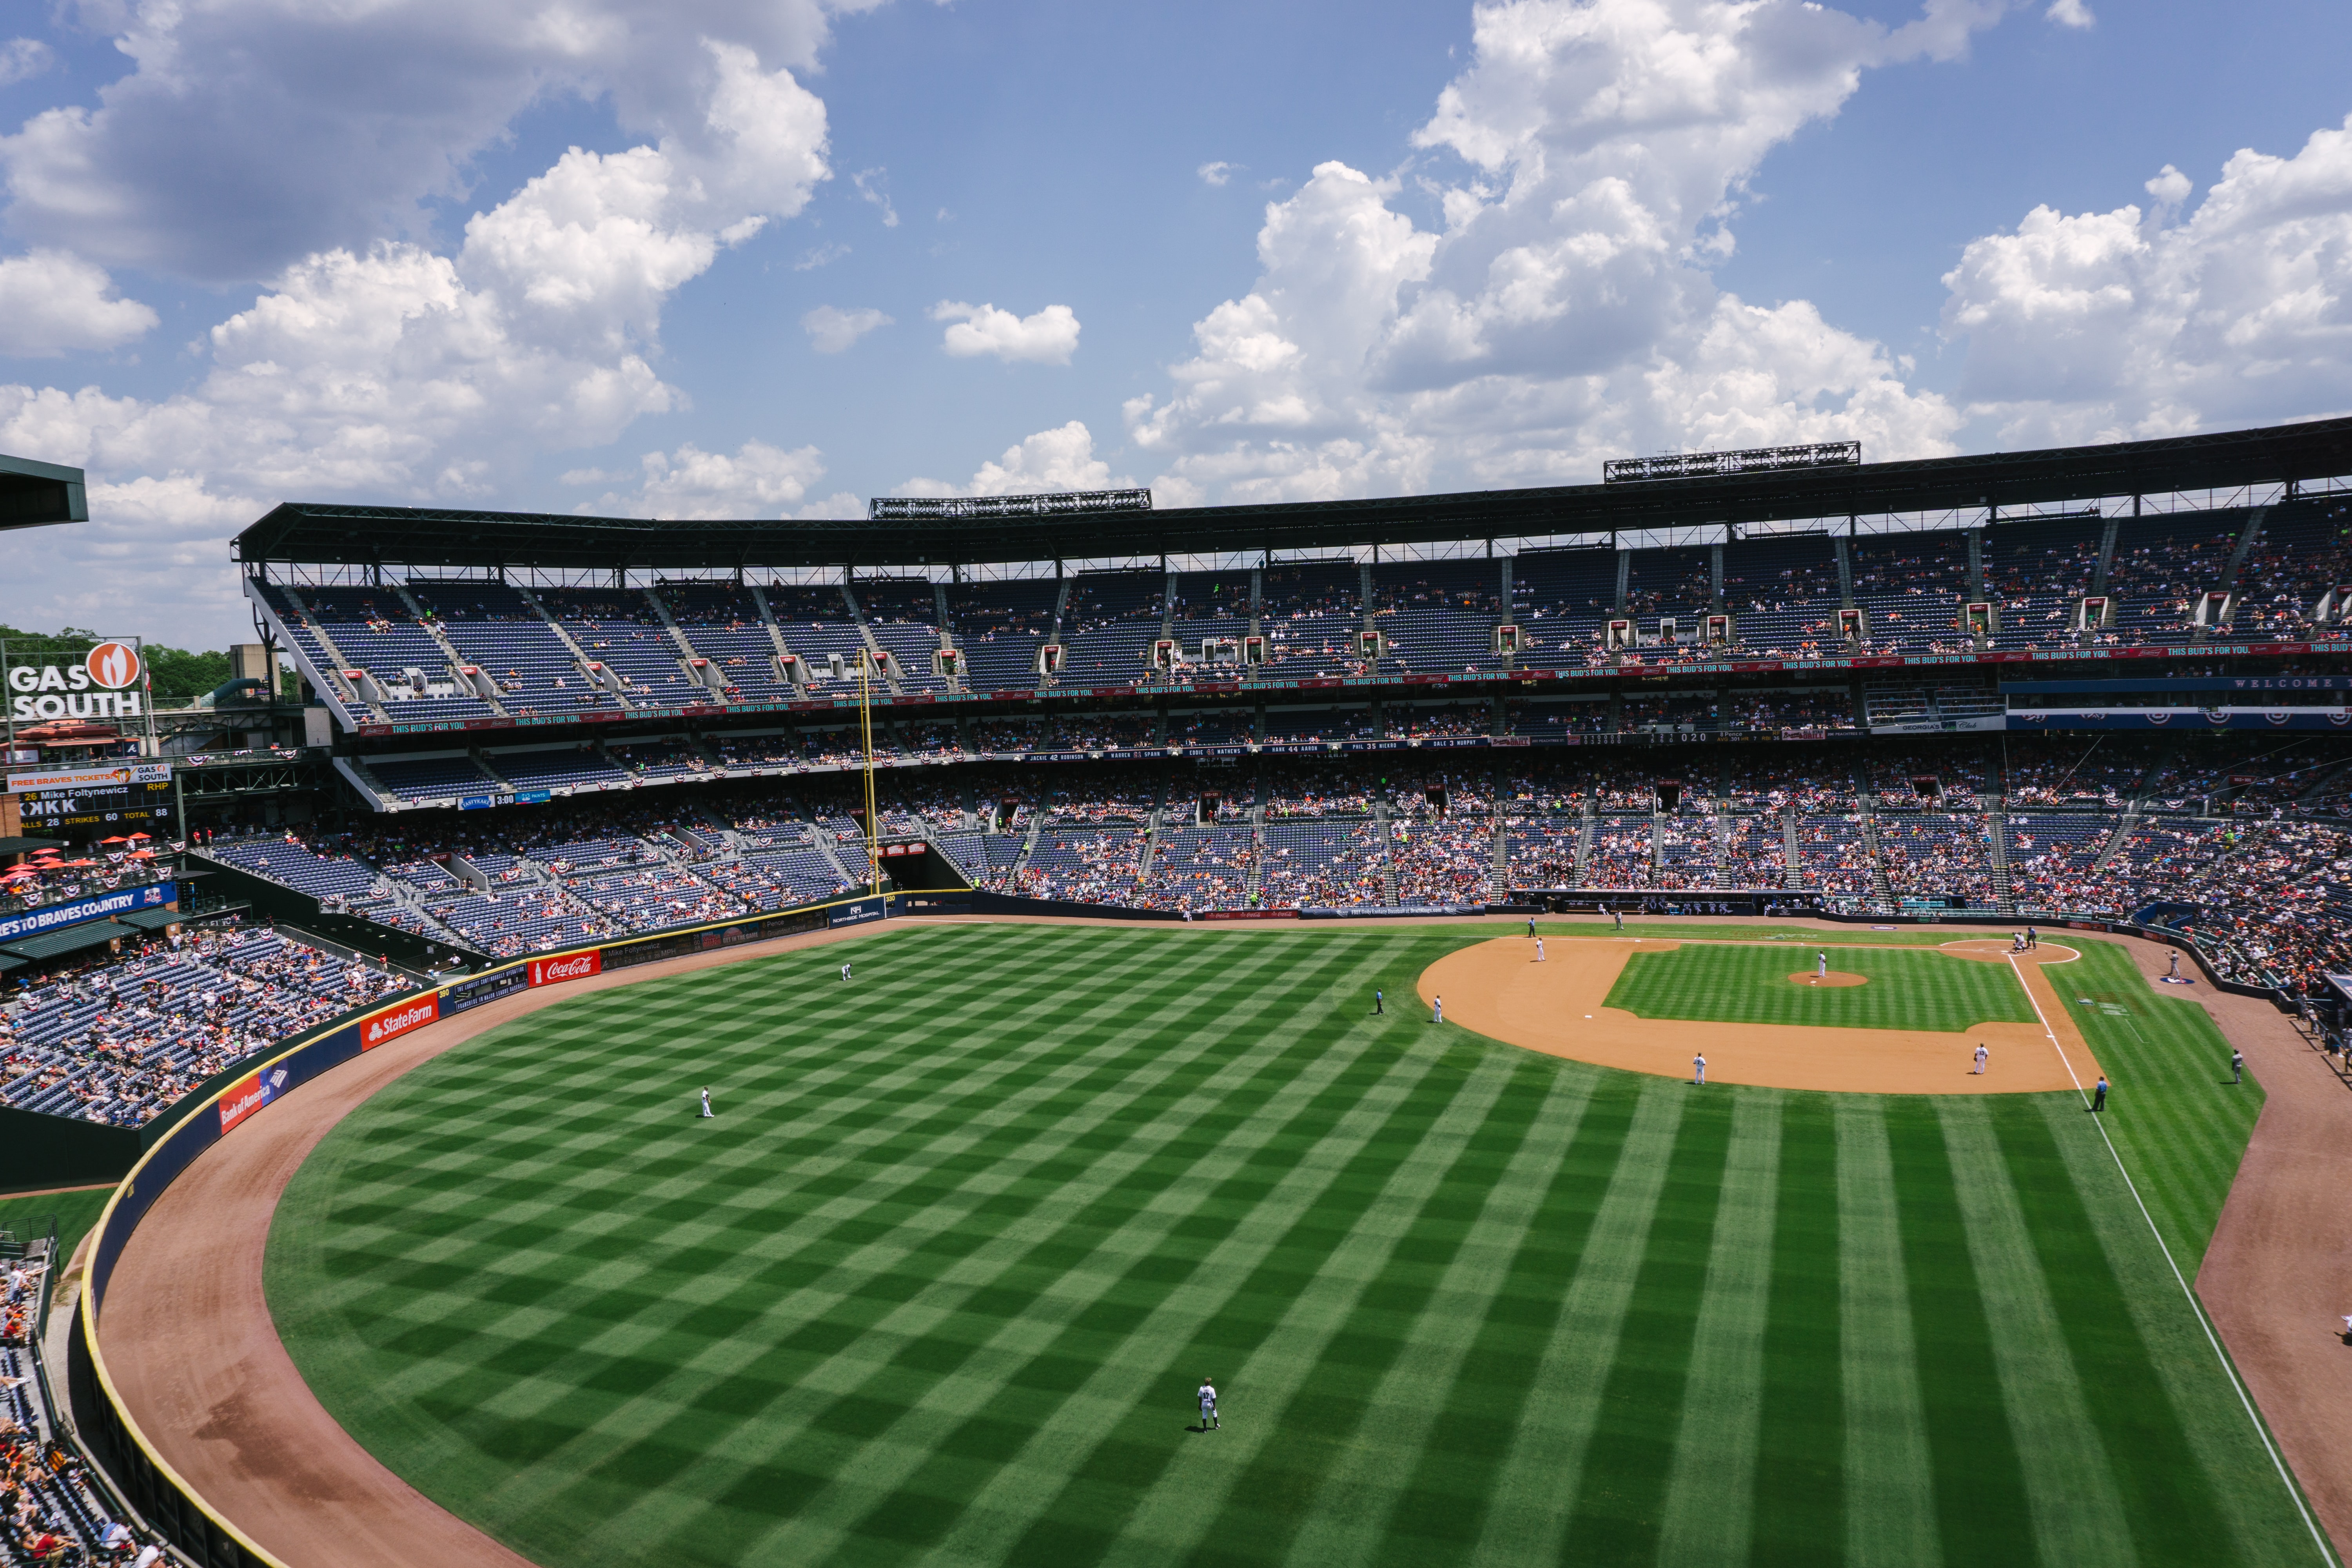 A view from above the bleachers at Turner Field